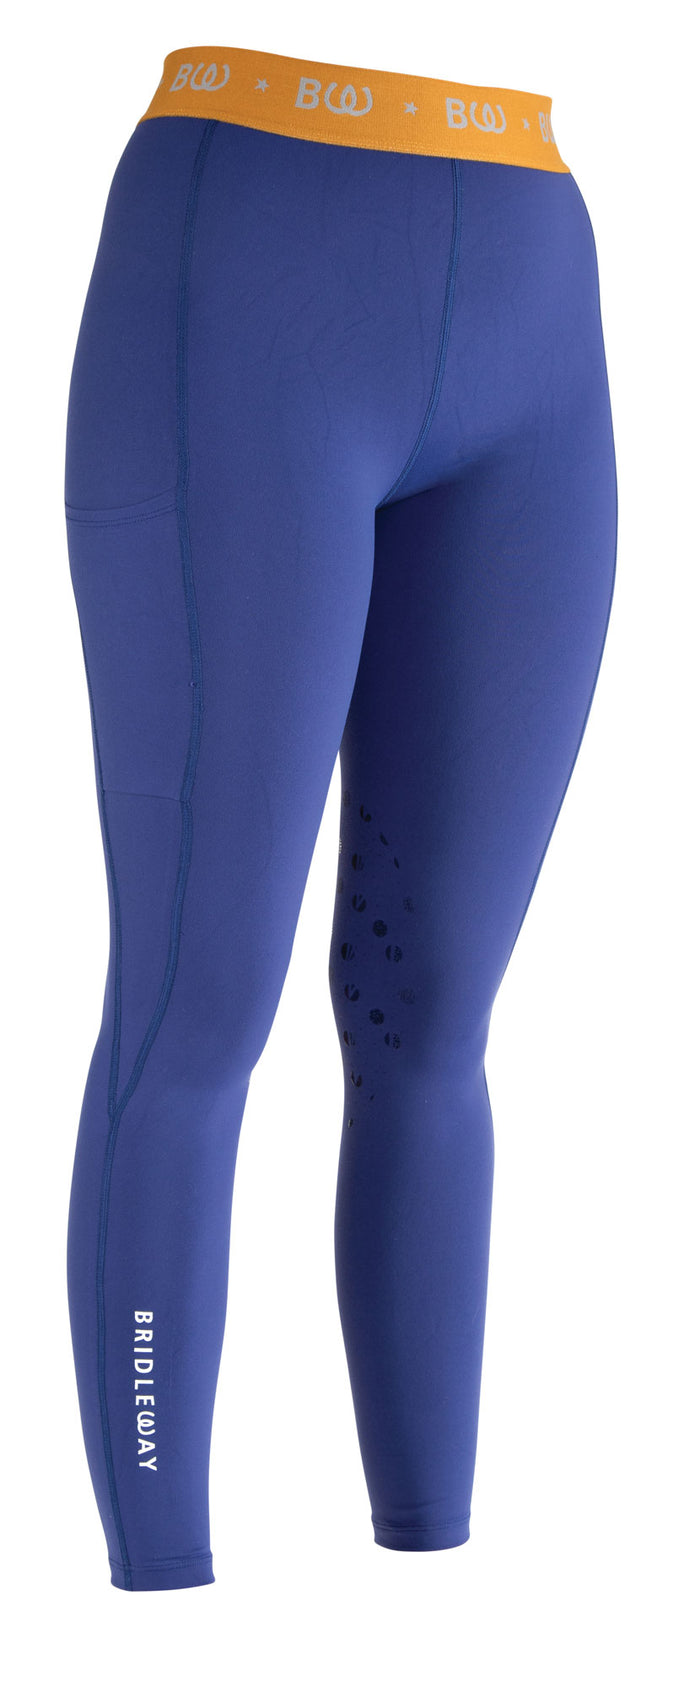 Bridleway Jade Summer Riding Tights